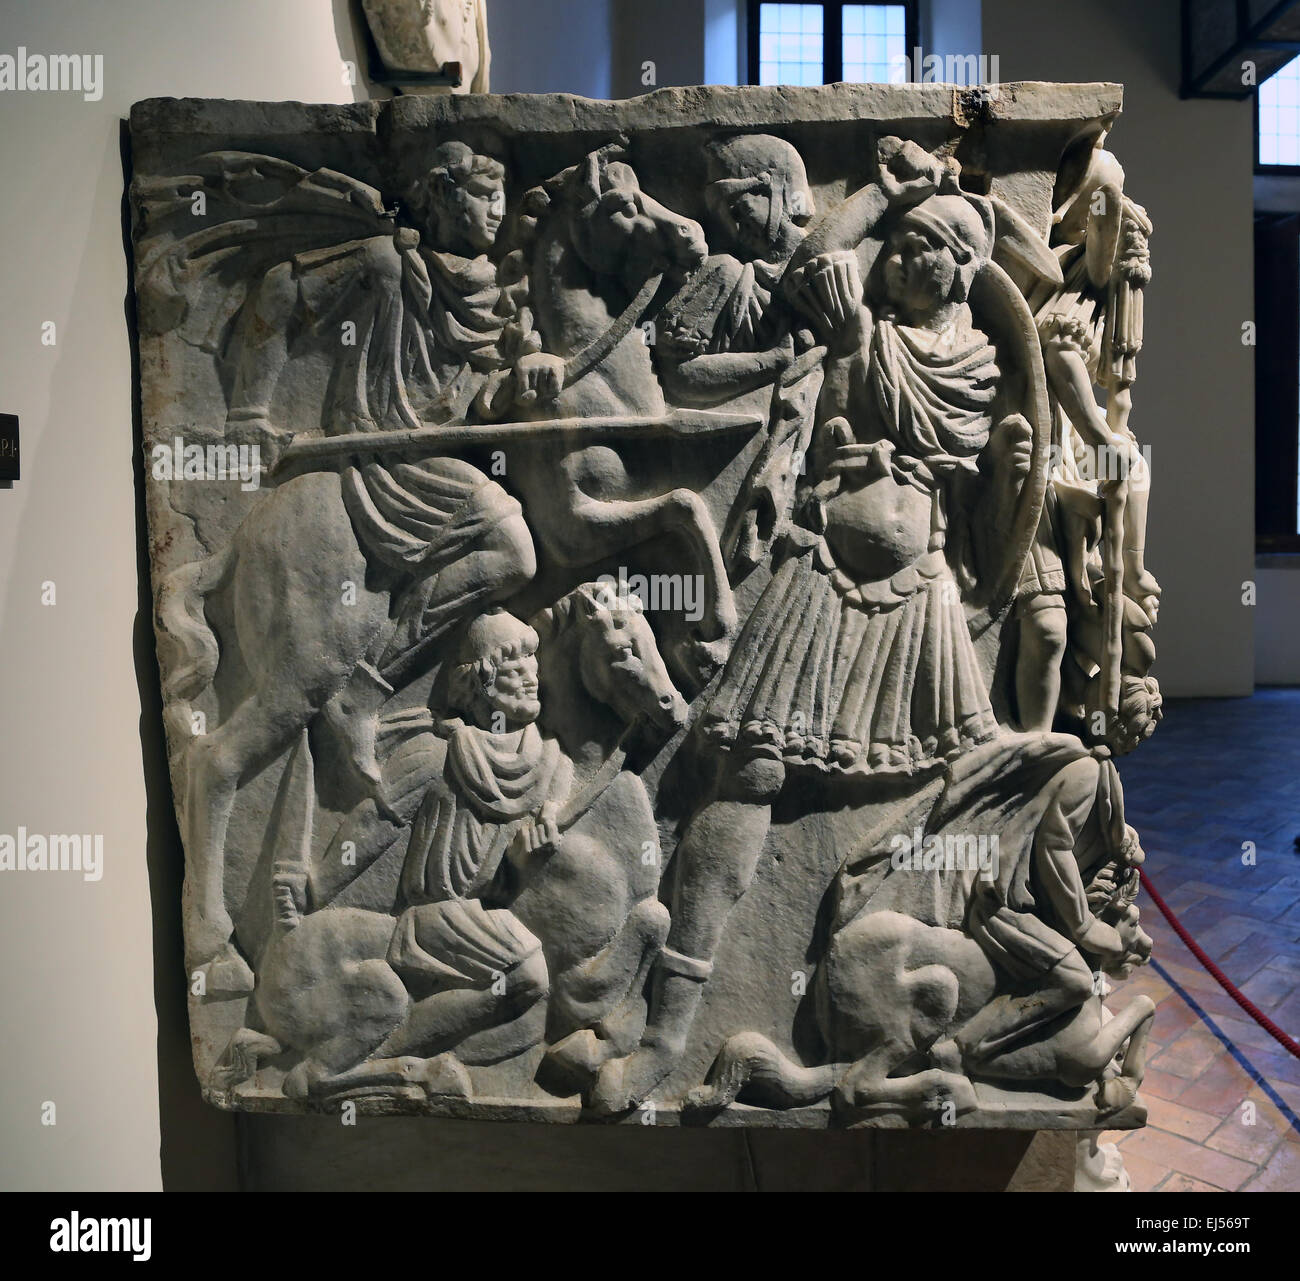 battle of romans and barbarians ludovisi sarcophagus The great ludovisi sarcophagus the identity of the deceased, who must be the young hero in the centre of the battle scene between romans and barbarians.